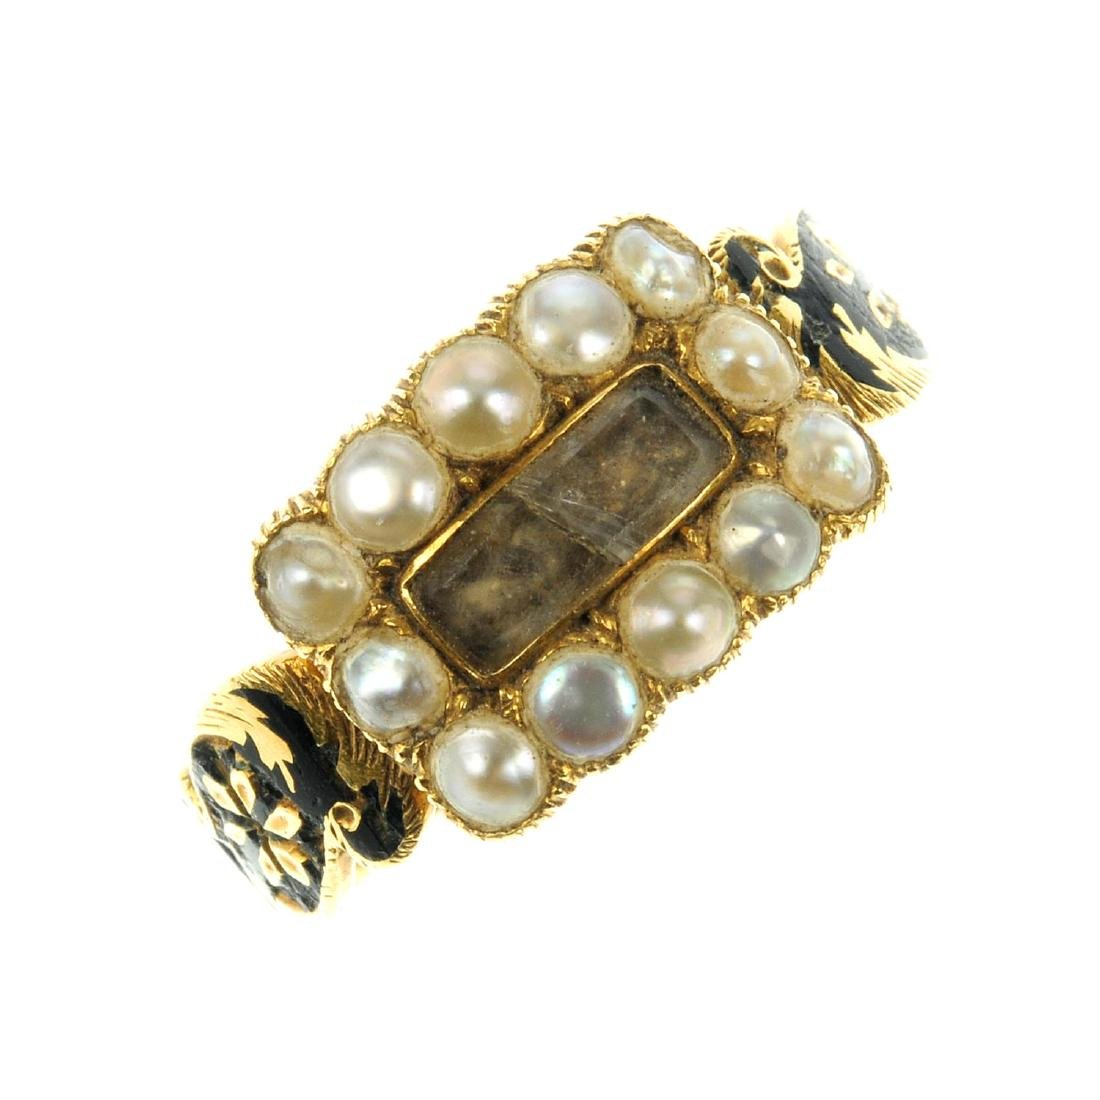 A George IV 18ct gold, split pearl and enamel ring. The